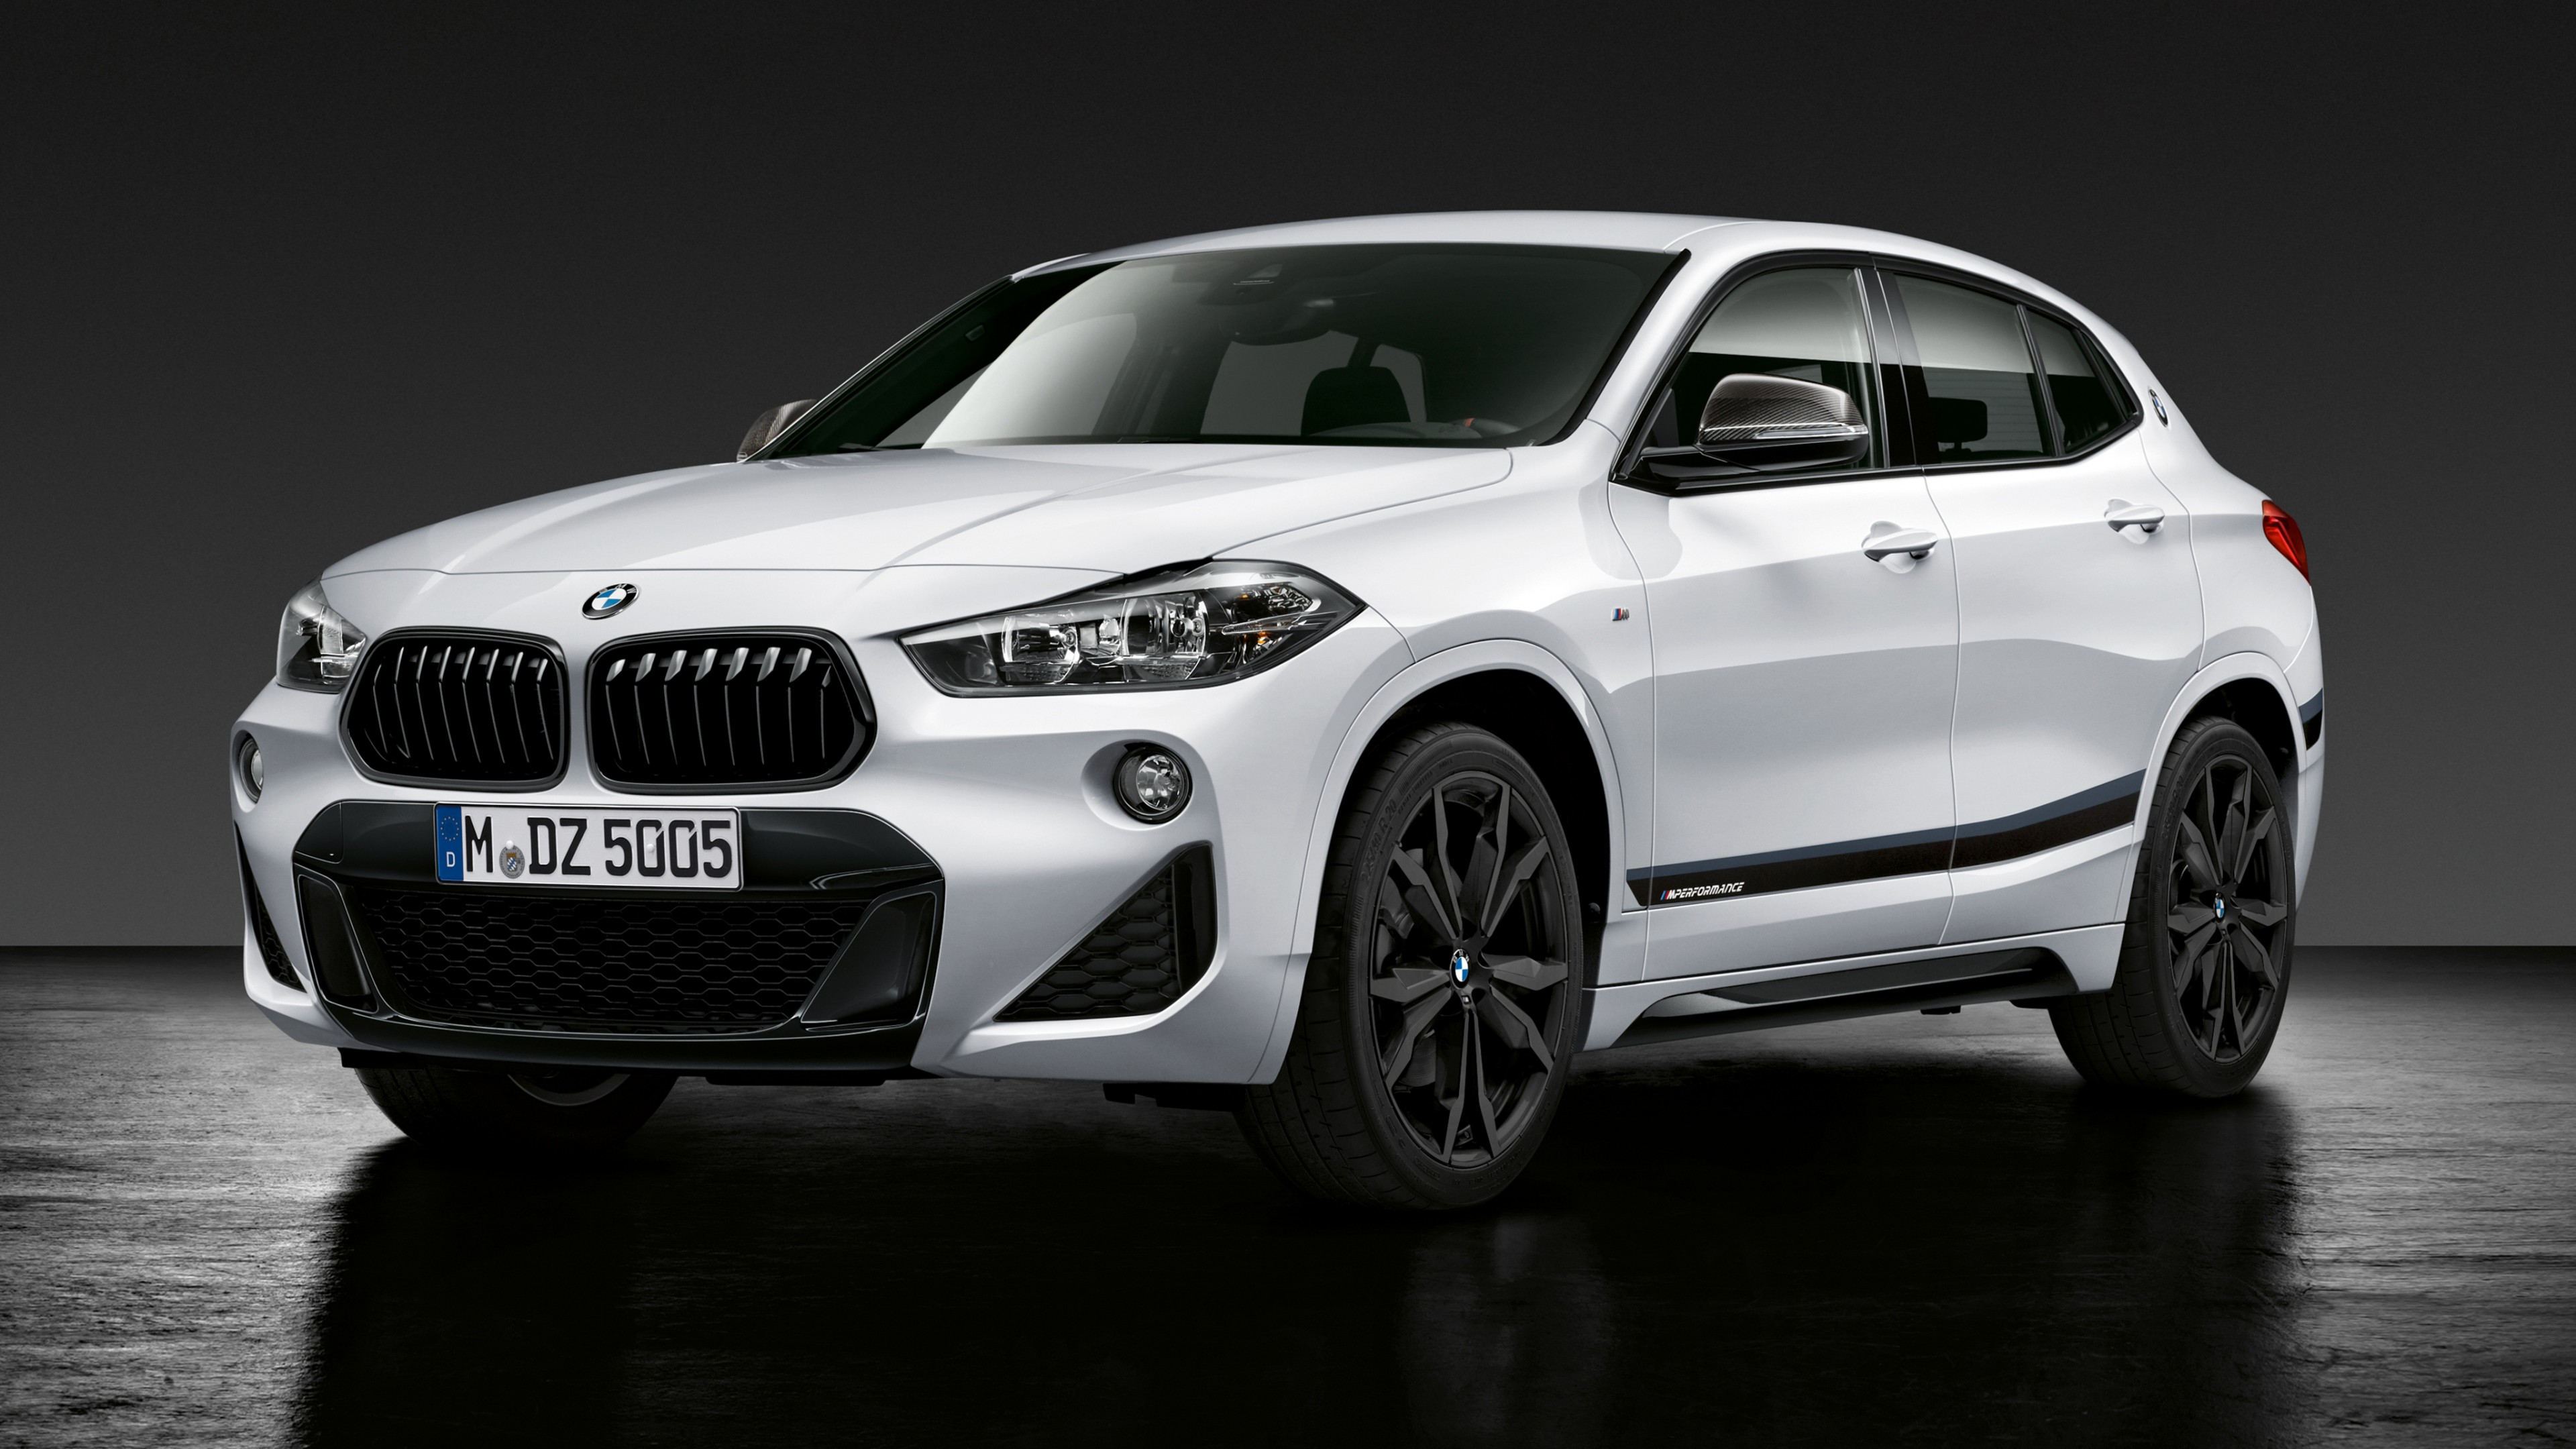 2018 bmw x2 m performance parts 4k wallpaper hd car. Black Bedroom Furniture Sets. Home Design Ideas